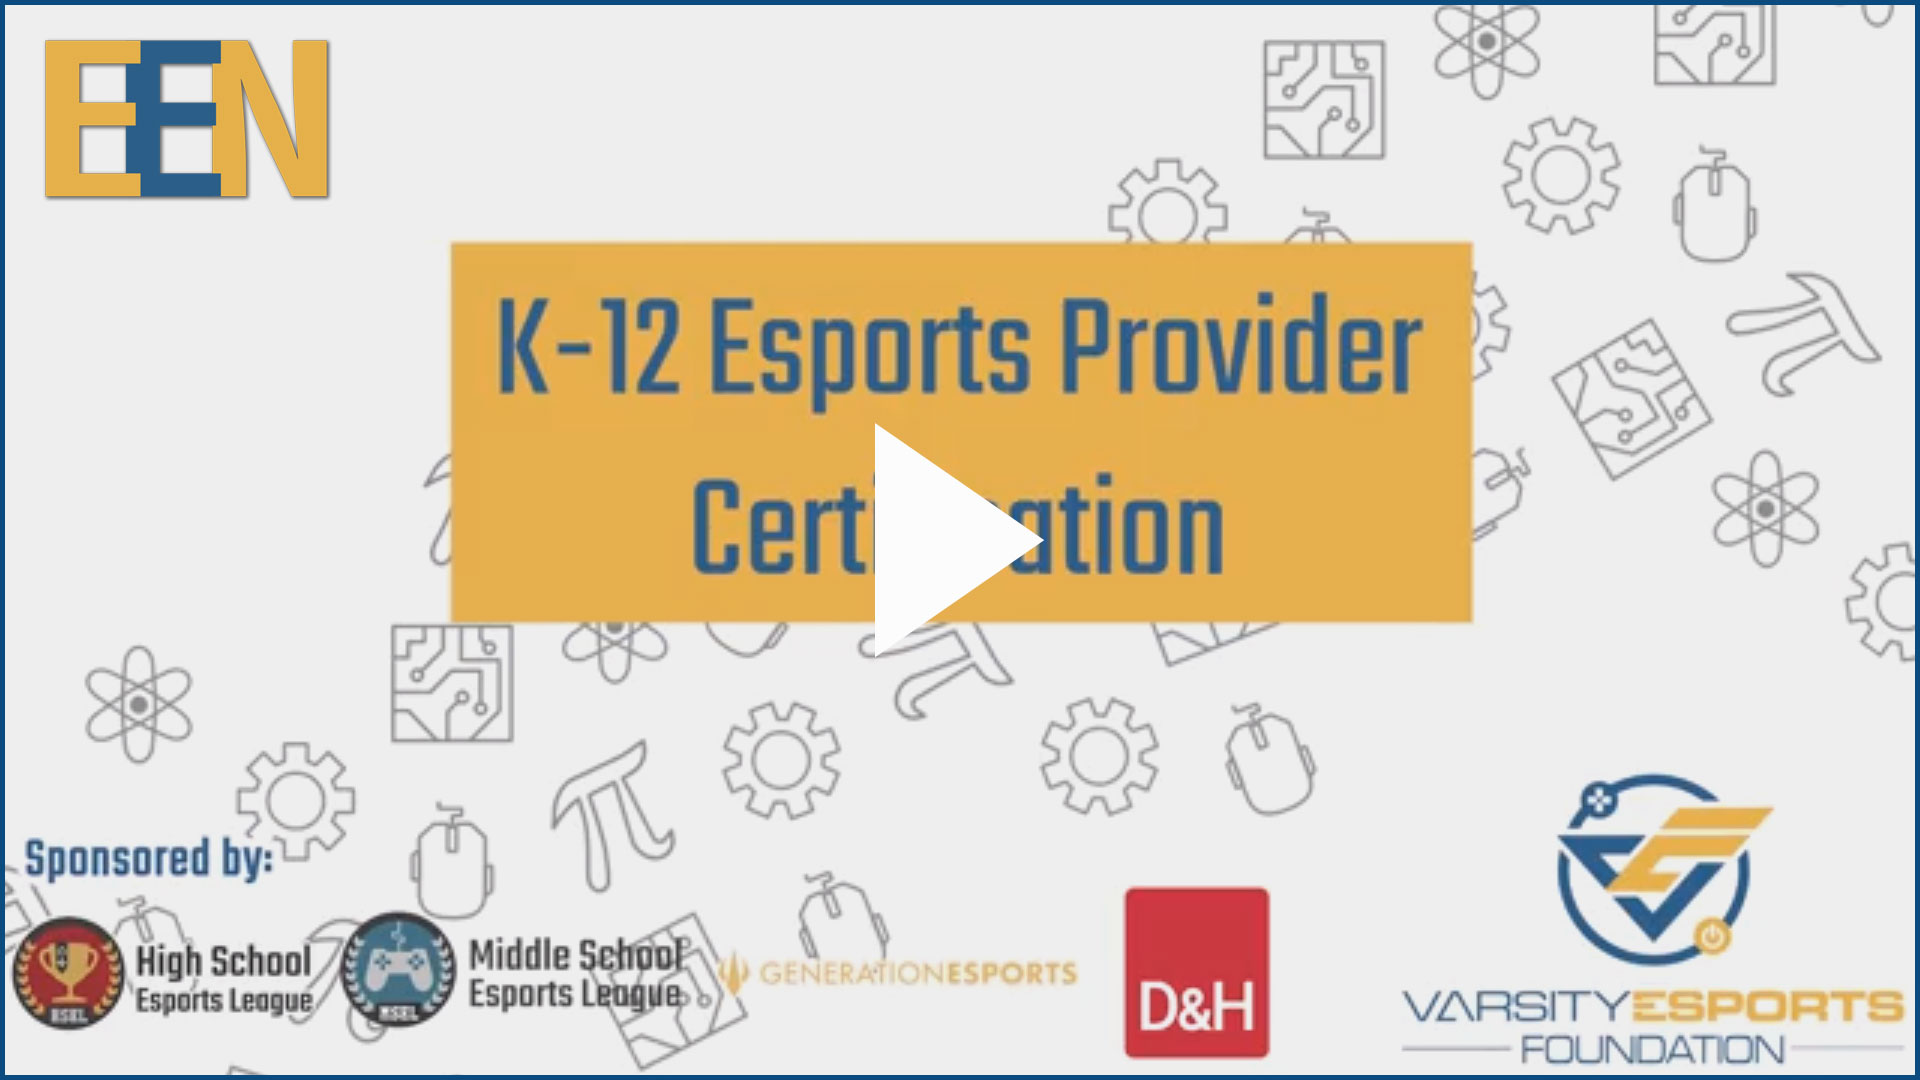 EEN Esports Certification